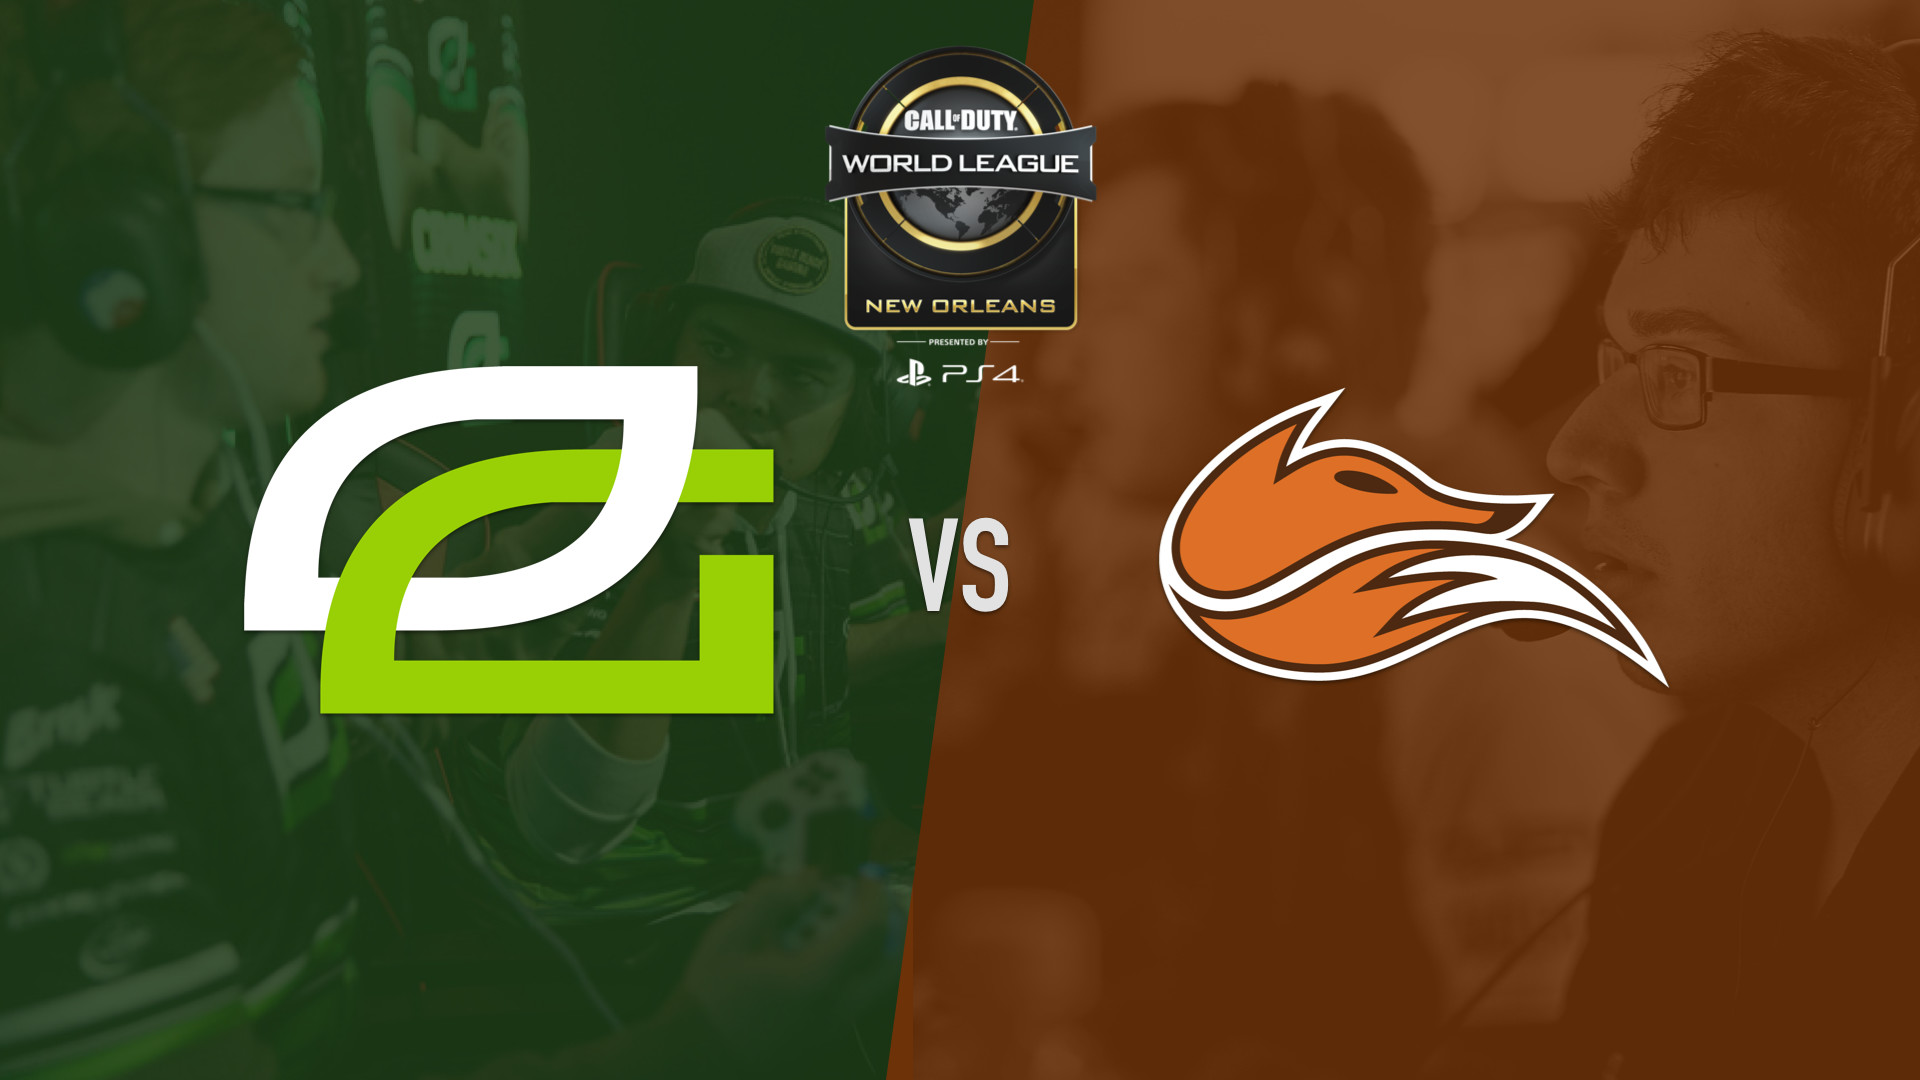 Res: 1920x1080, Optic Gaming Wallpaper 2017 Collection Of Source · MLG Video Optic Gaming  vs Echo Fox CWL New Orleans Day 2